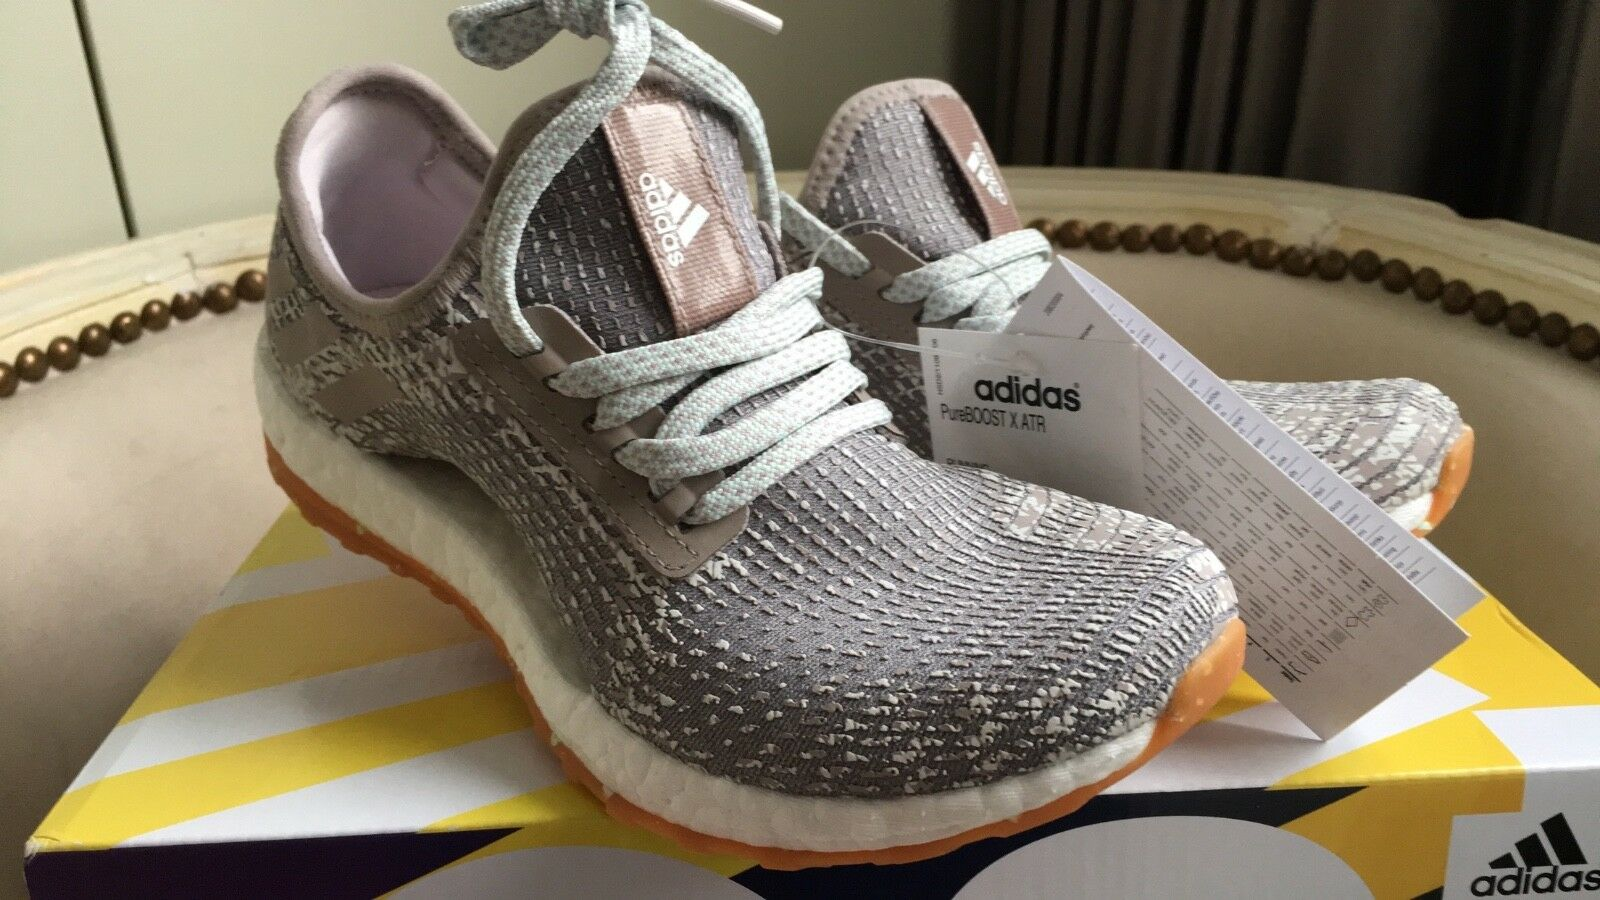 Adidas Women's shoes Pure Boost X ATR